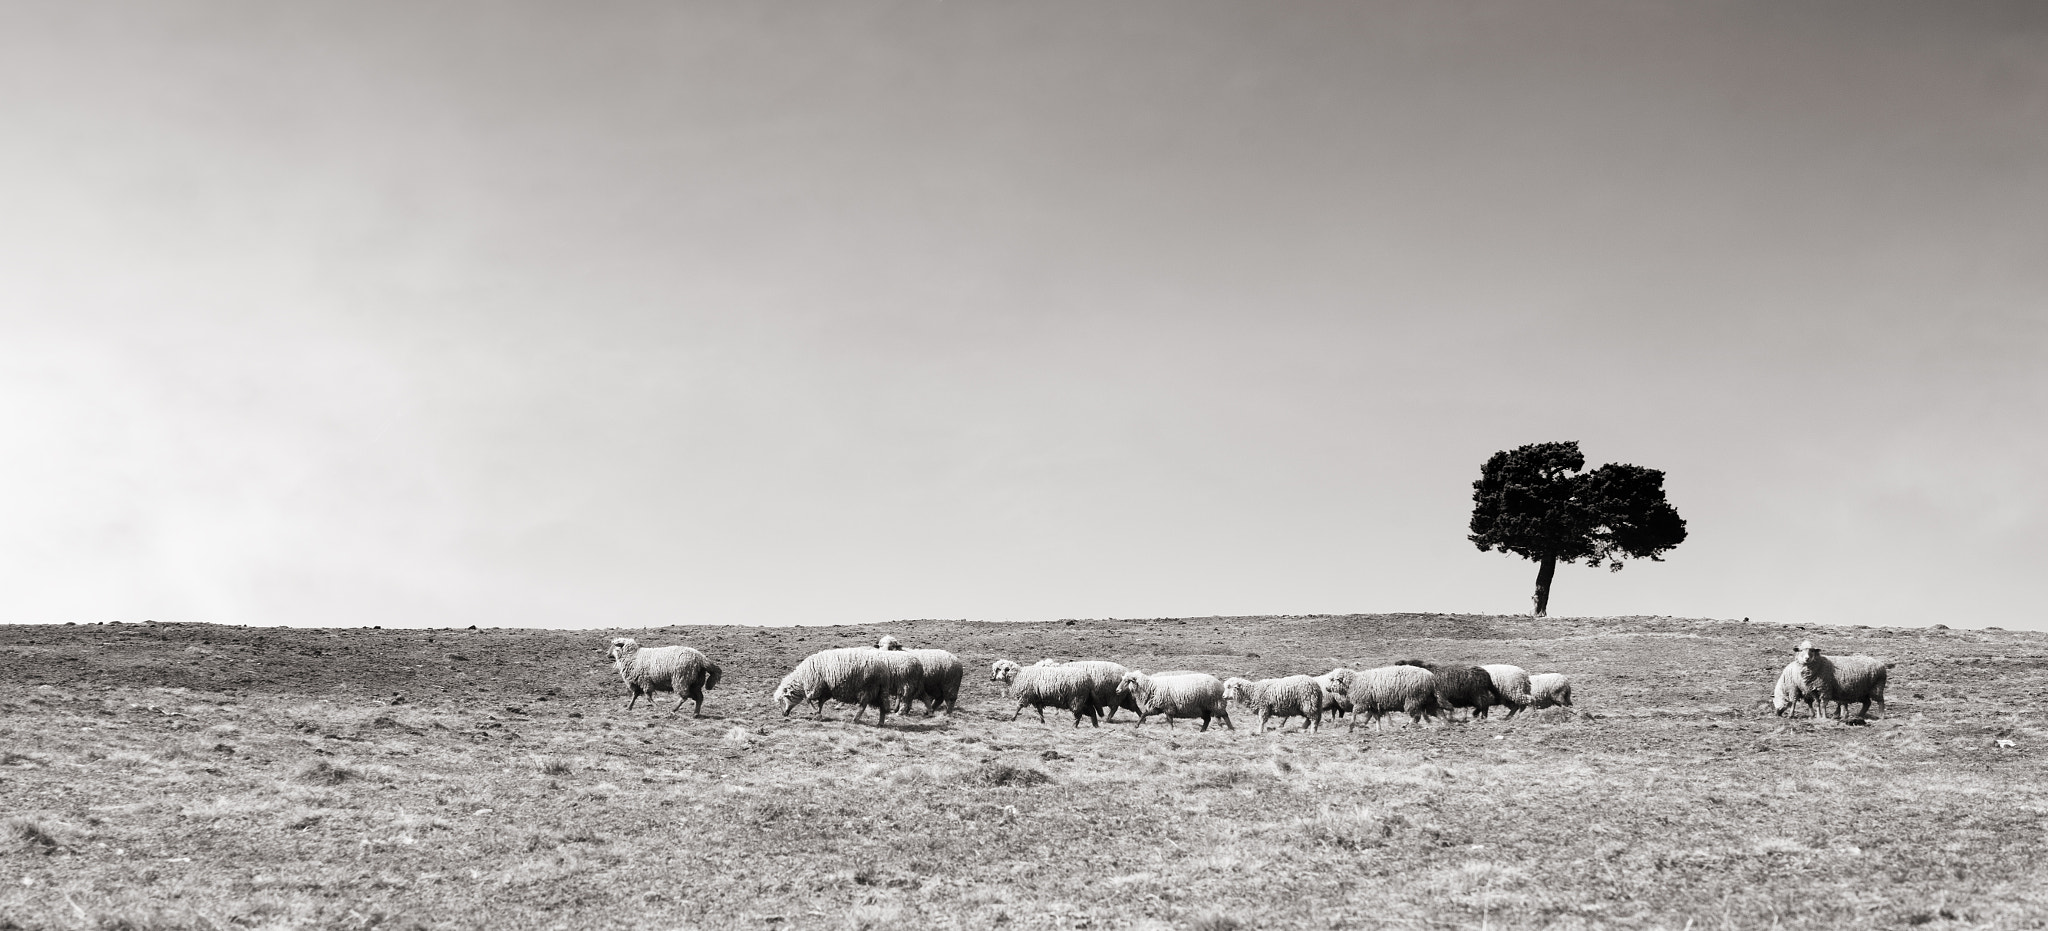 Photograph Sheep by Alex Neagoe on 500px